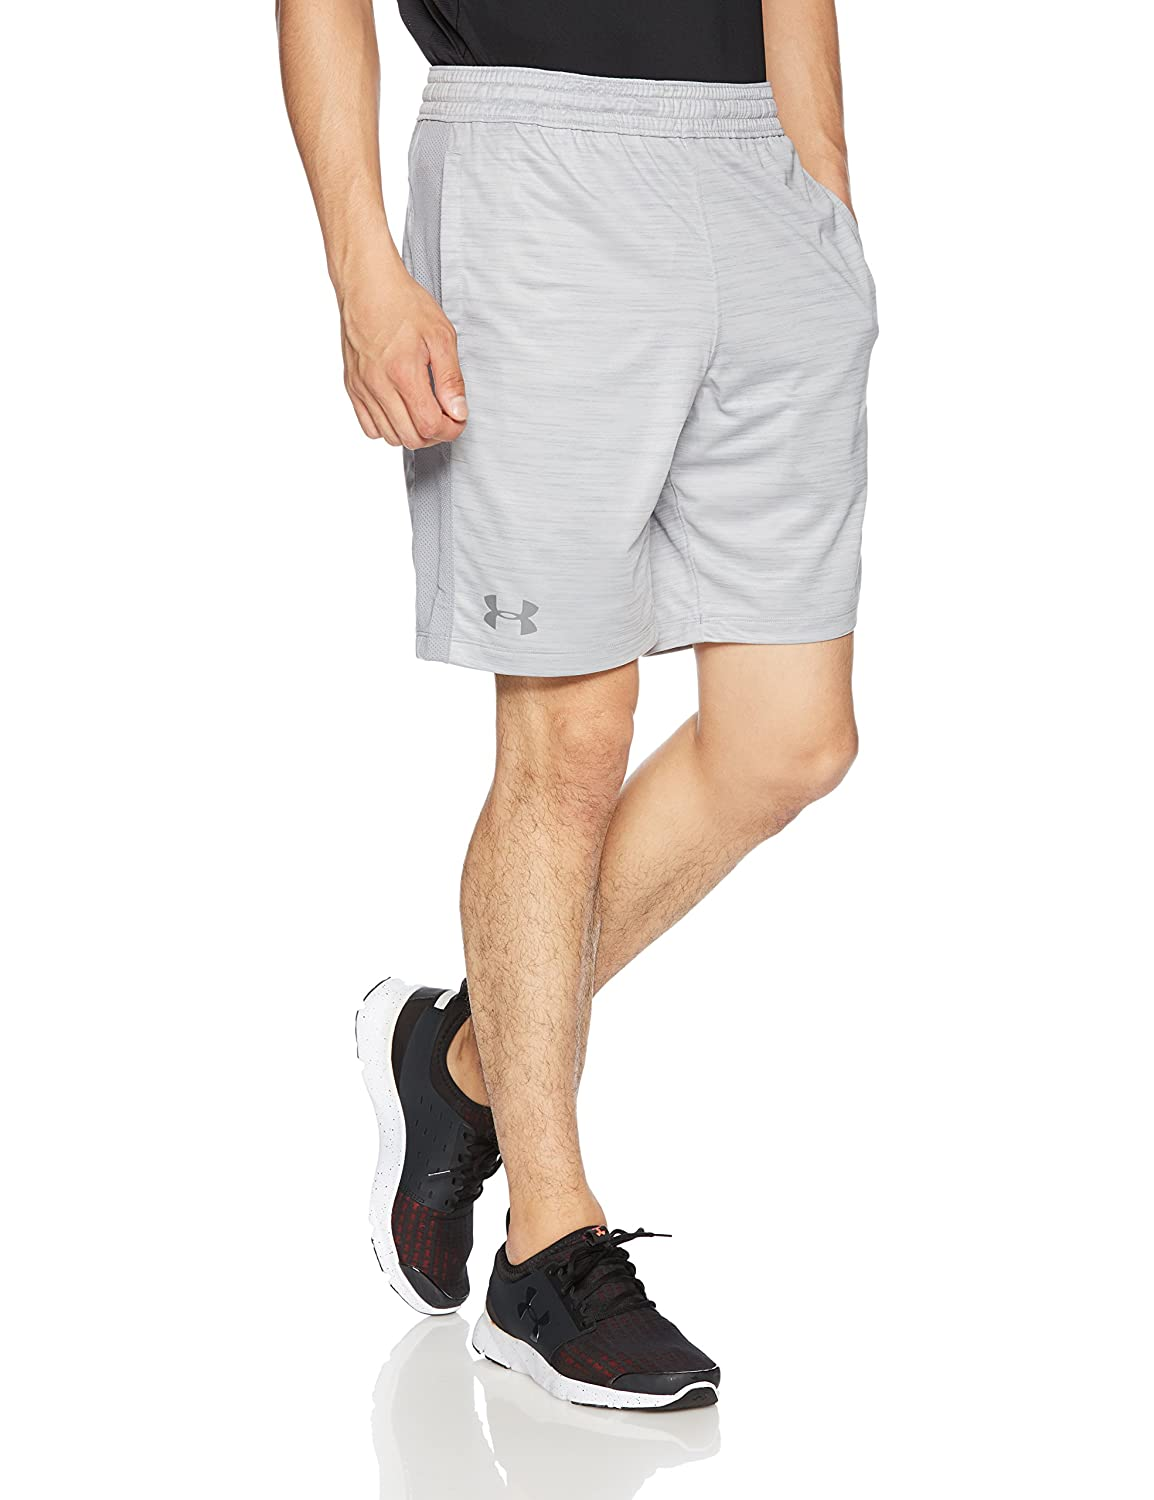 Under Armour Men's MK-1 Twist Shorts Under Armour Apparel 1312297